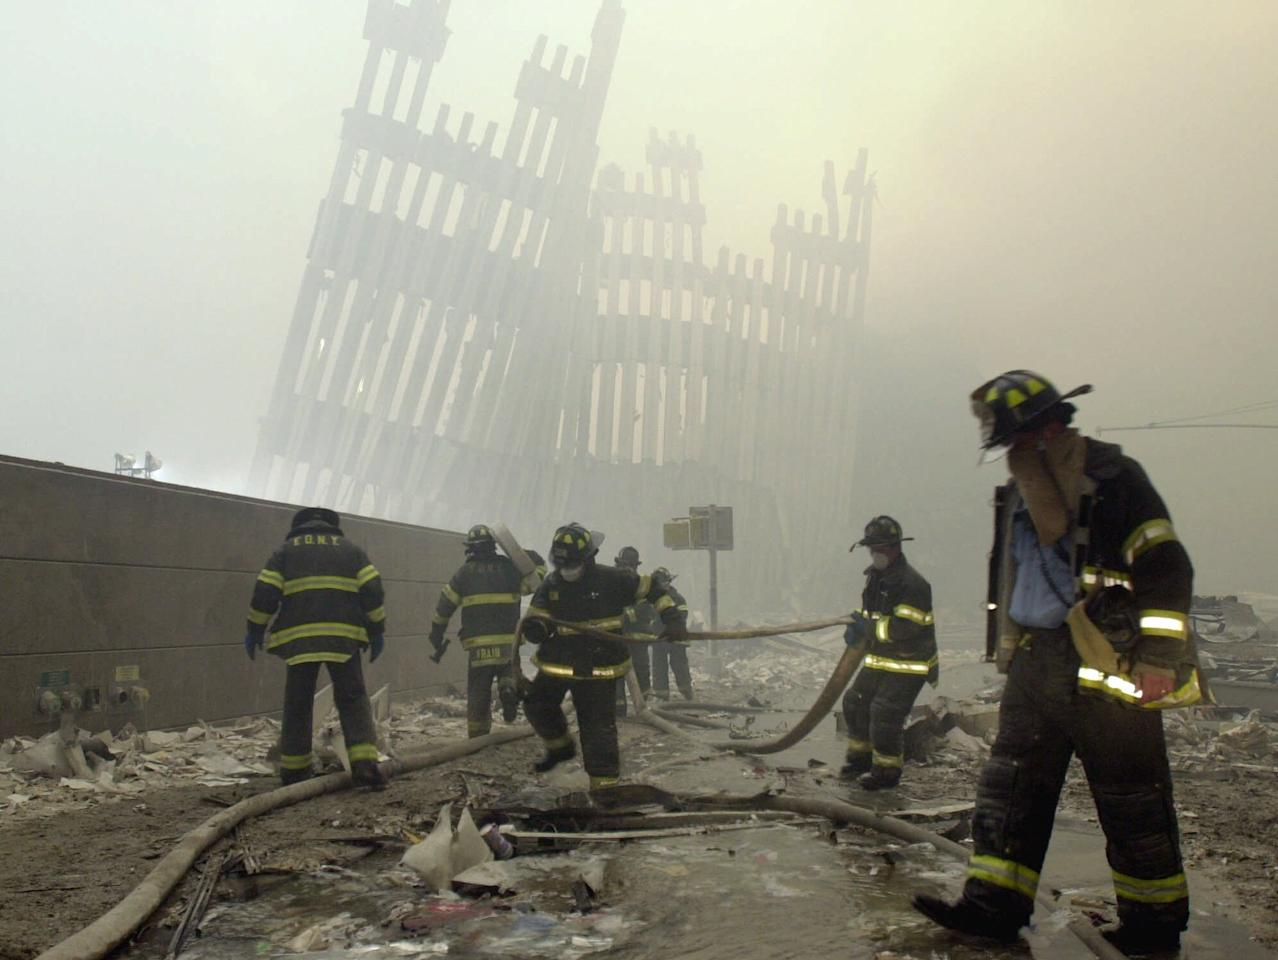 9/11: Then and now - 15 years later